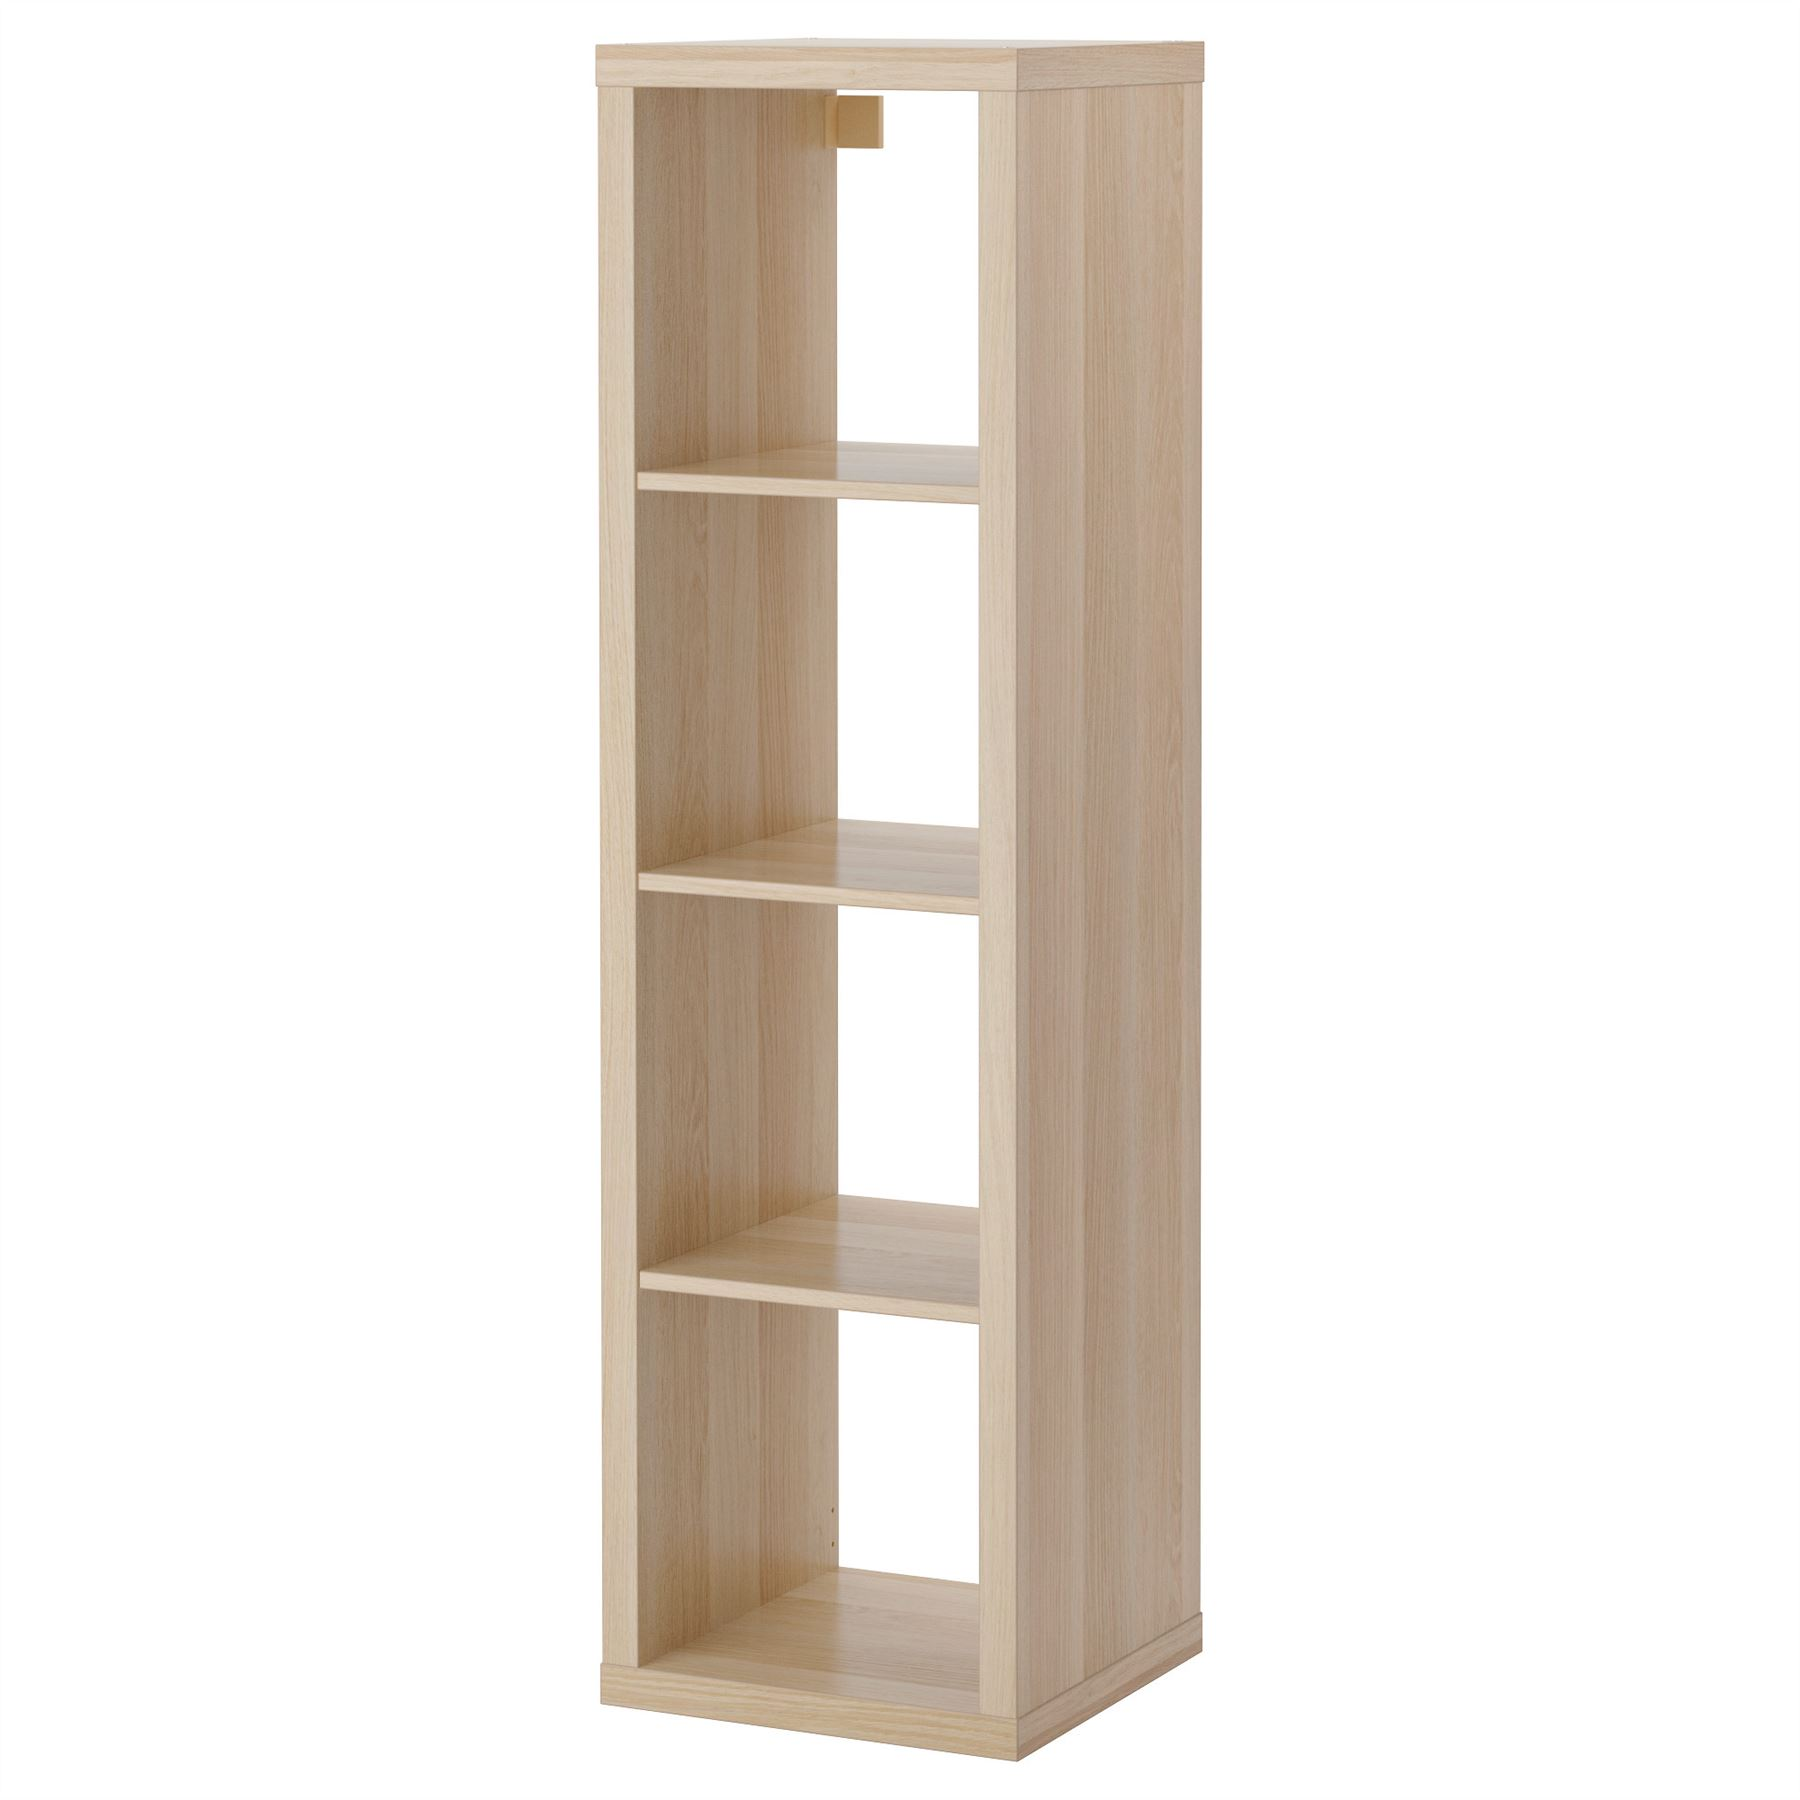 Ikea kallax 4 cube storage bookcase rectangle shelving unit white oak ebay - Mobile ikea kallax ...